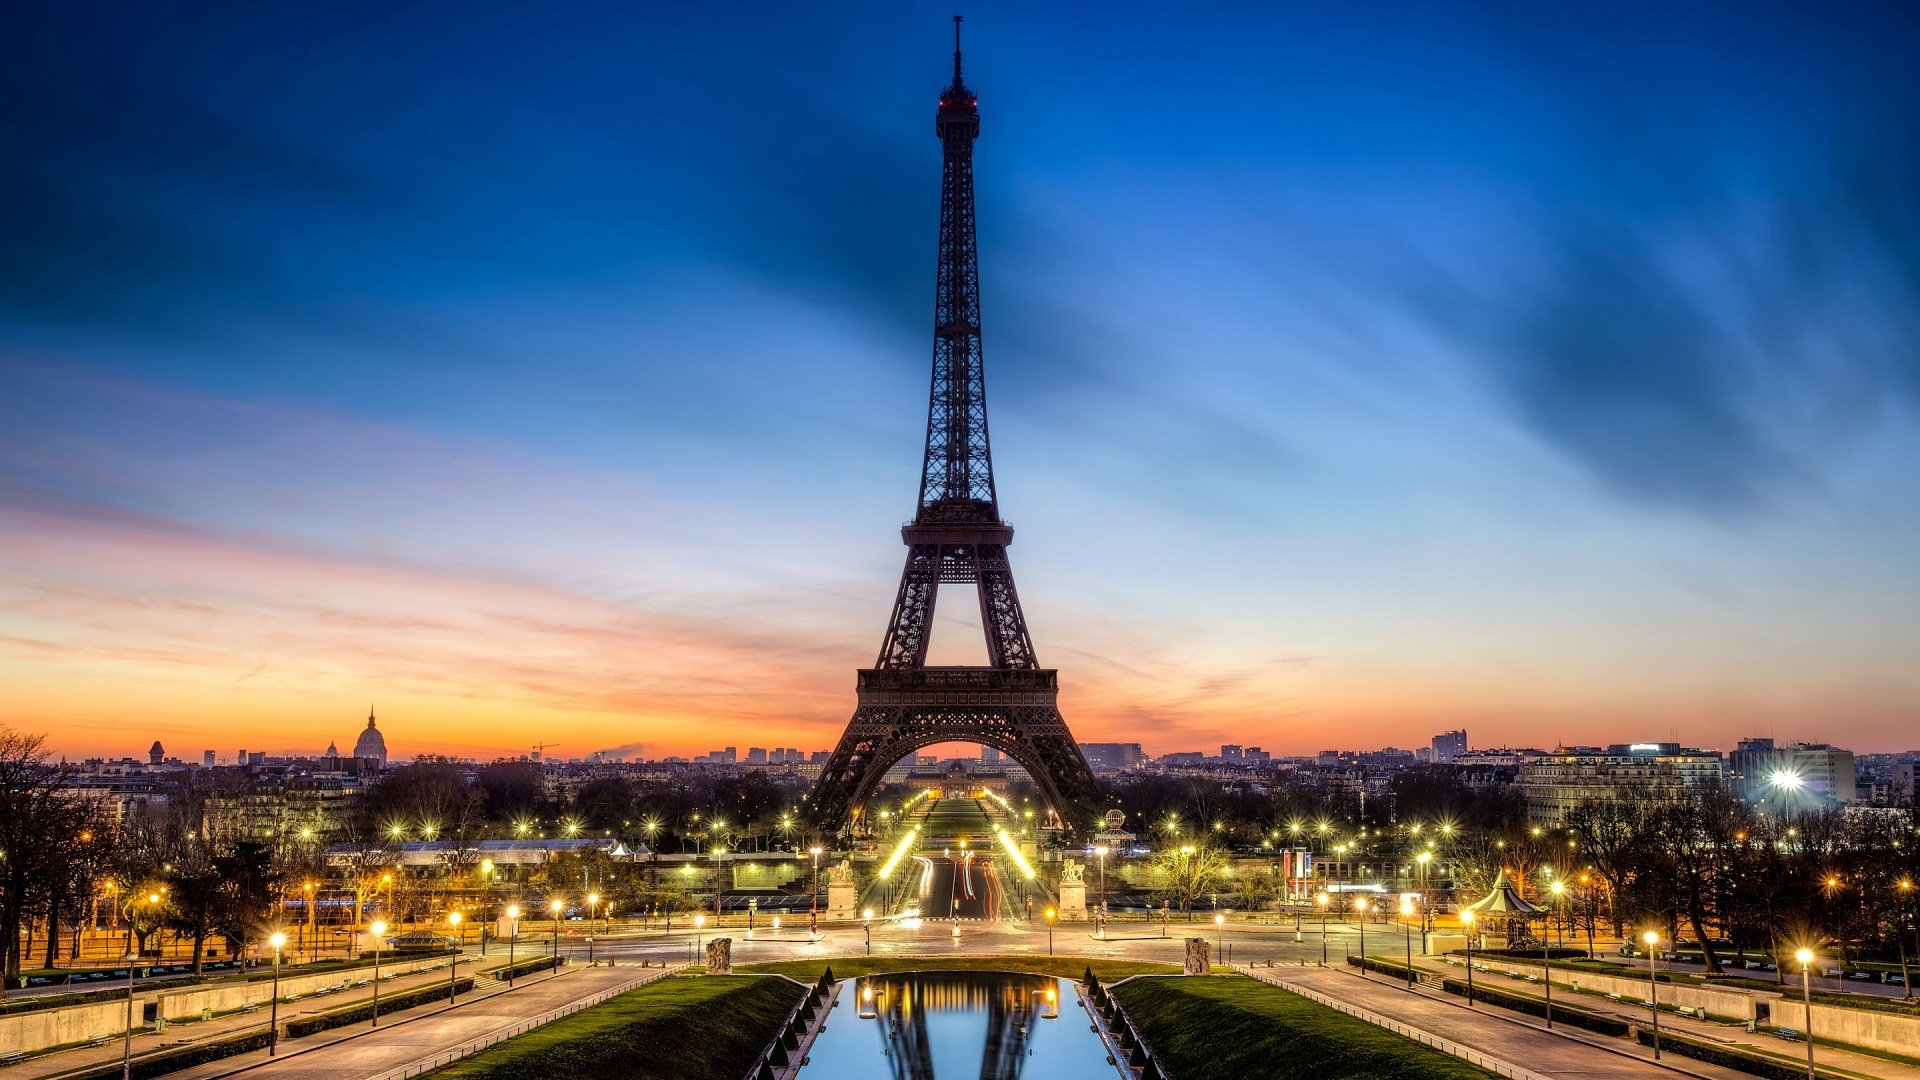 The History of the Eiffel Tower